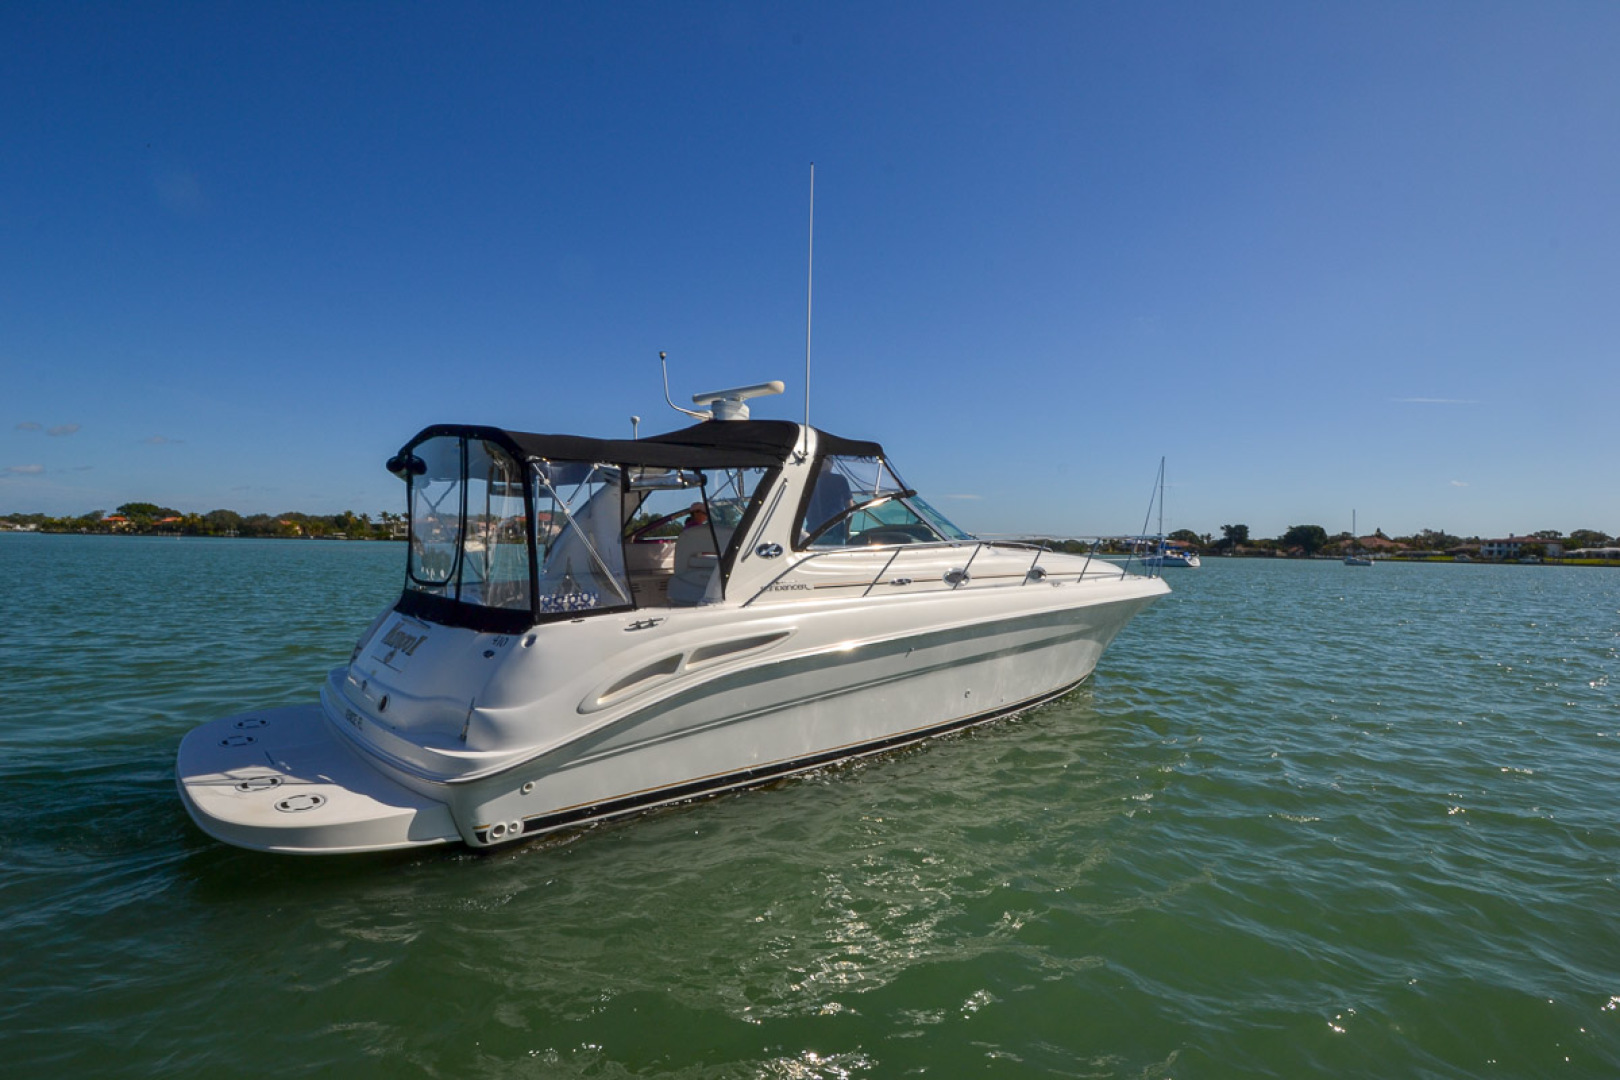 2000 Sea Ray 410 Sundancer-1.jpg